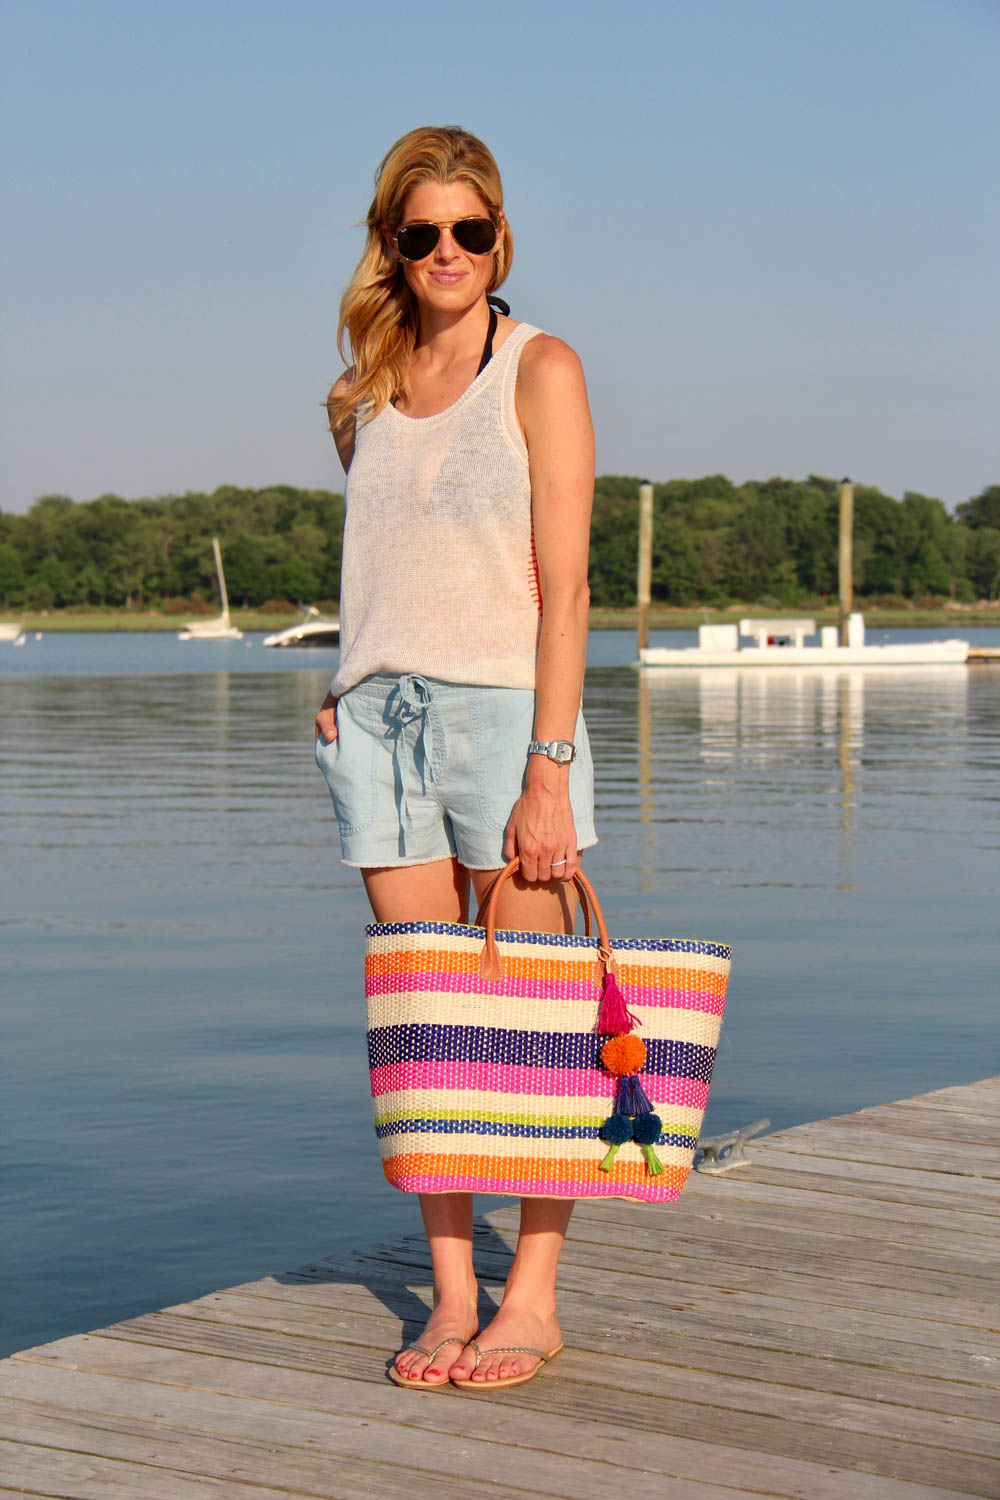 WHITE + WARREN STITCH TANK | $143 SOFT JOIE KALPANA CHAMBRAY SHORTS | $148 MISA TOTE | $120